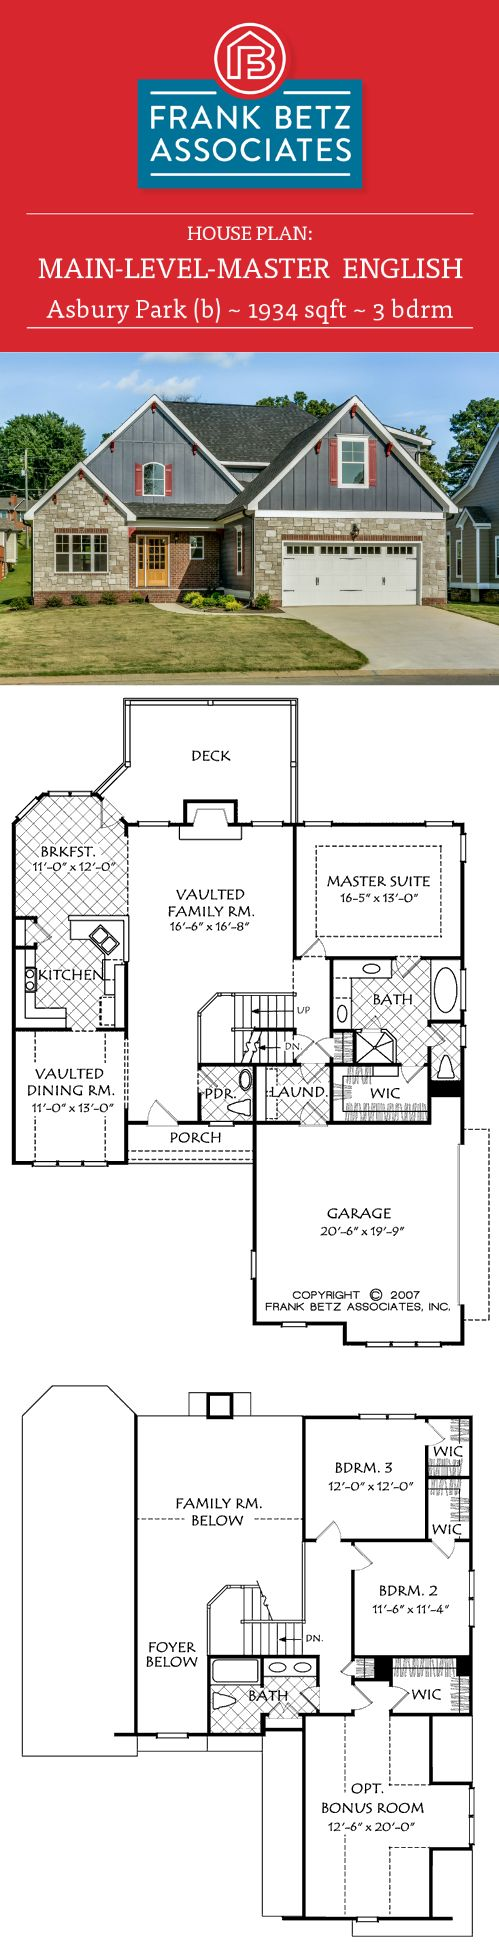 17 best images about main level master house plans on for Betz house plans